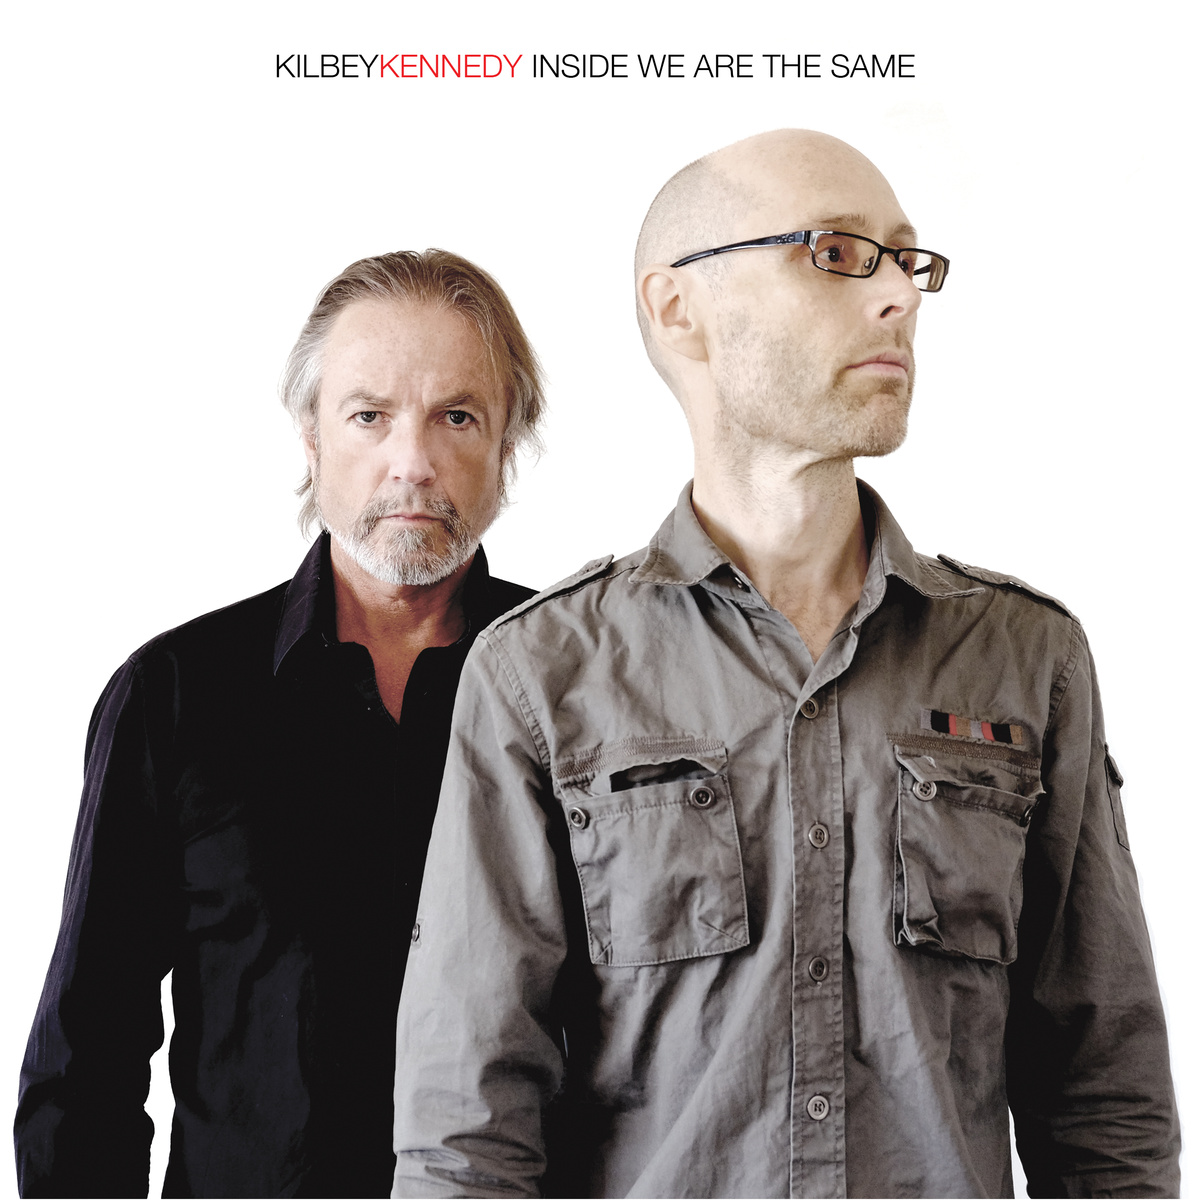 Review of Steve Kilbey & Martin Kennedy's forthcoming release 'Inside We Are The Same'